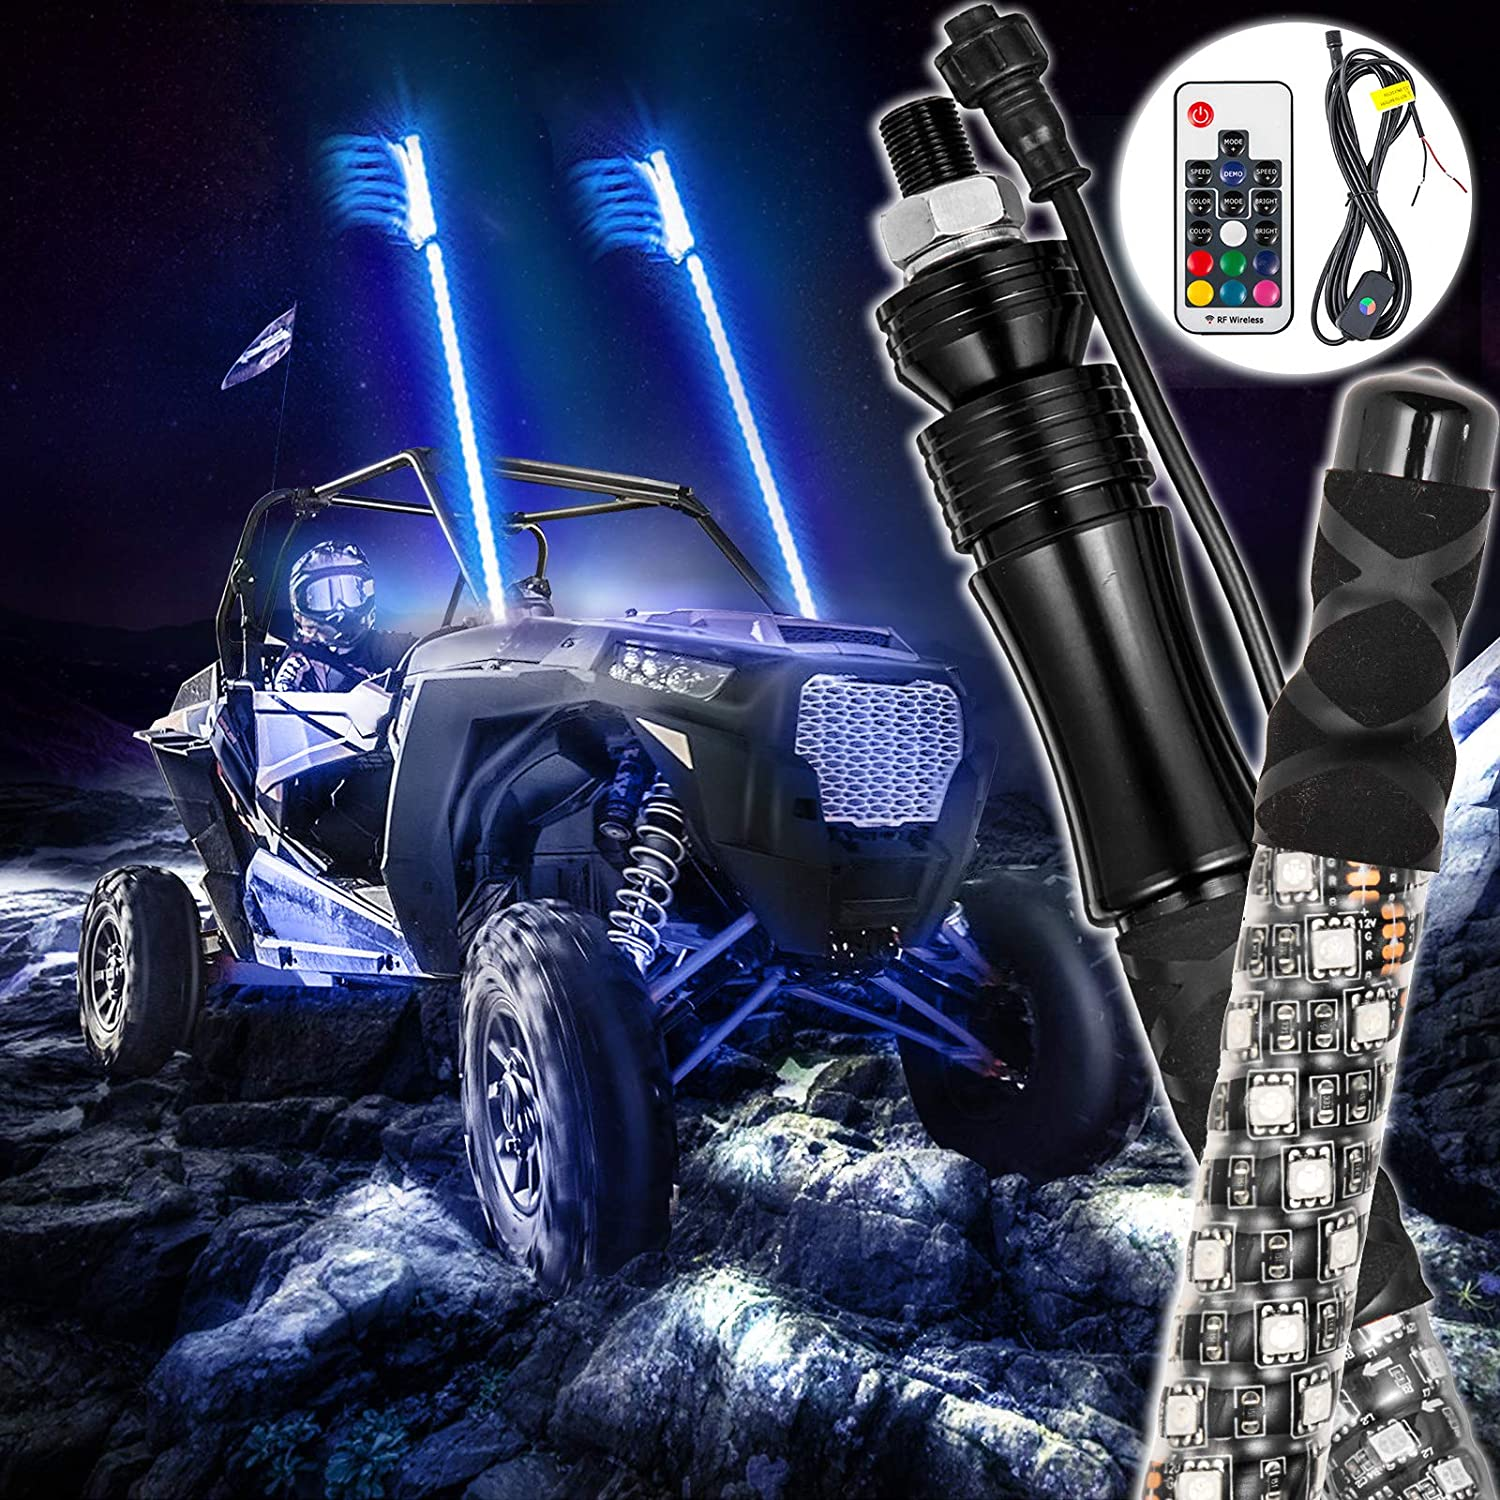 GTP 5ft Spiral LED Whip Lights 360/° Twisted 20 Color RGB 21 Modes Lighted Whips Antenna W//Flag for UTV ATV Polaris RZR Quad Off Road Jeep Can-am Maverick Yamaha Sand Dune Buggy 4X4